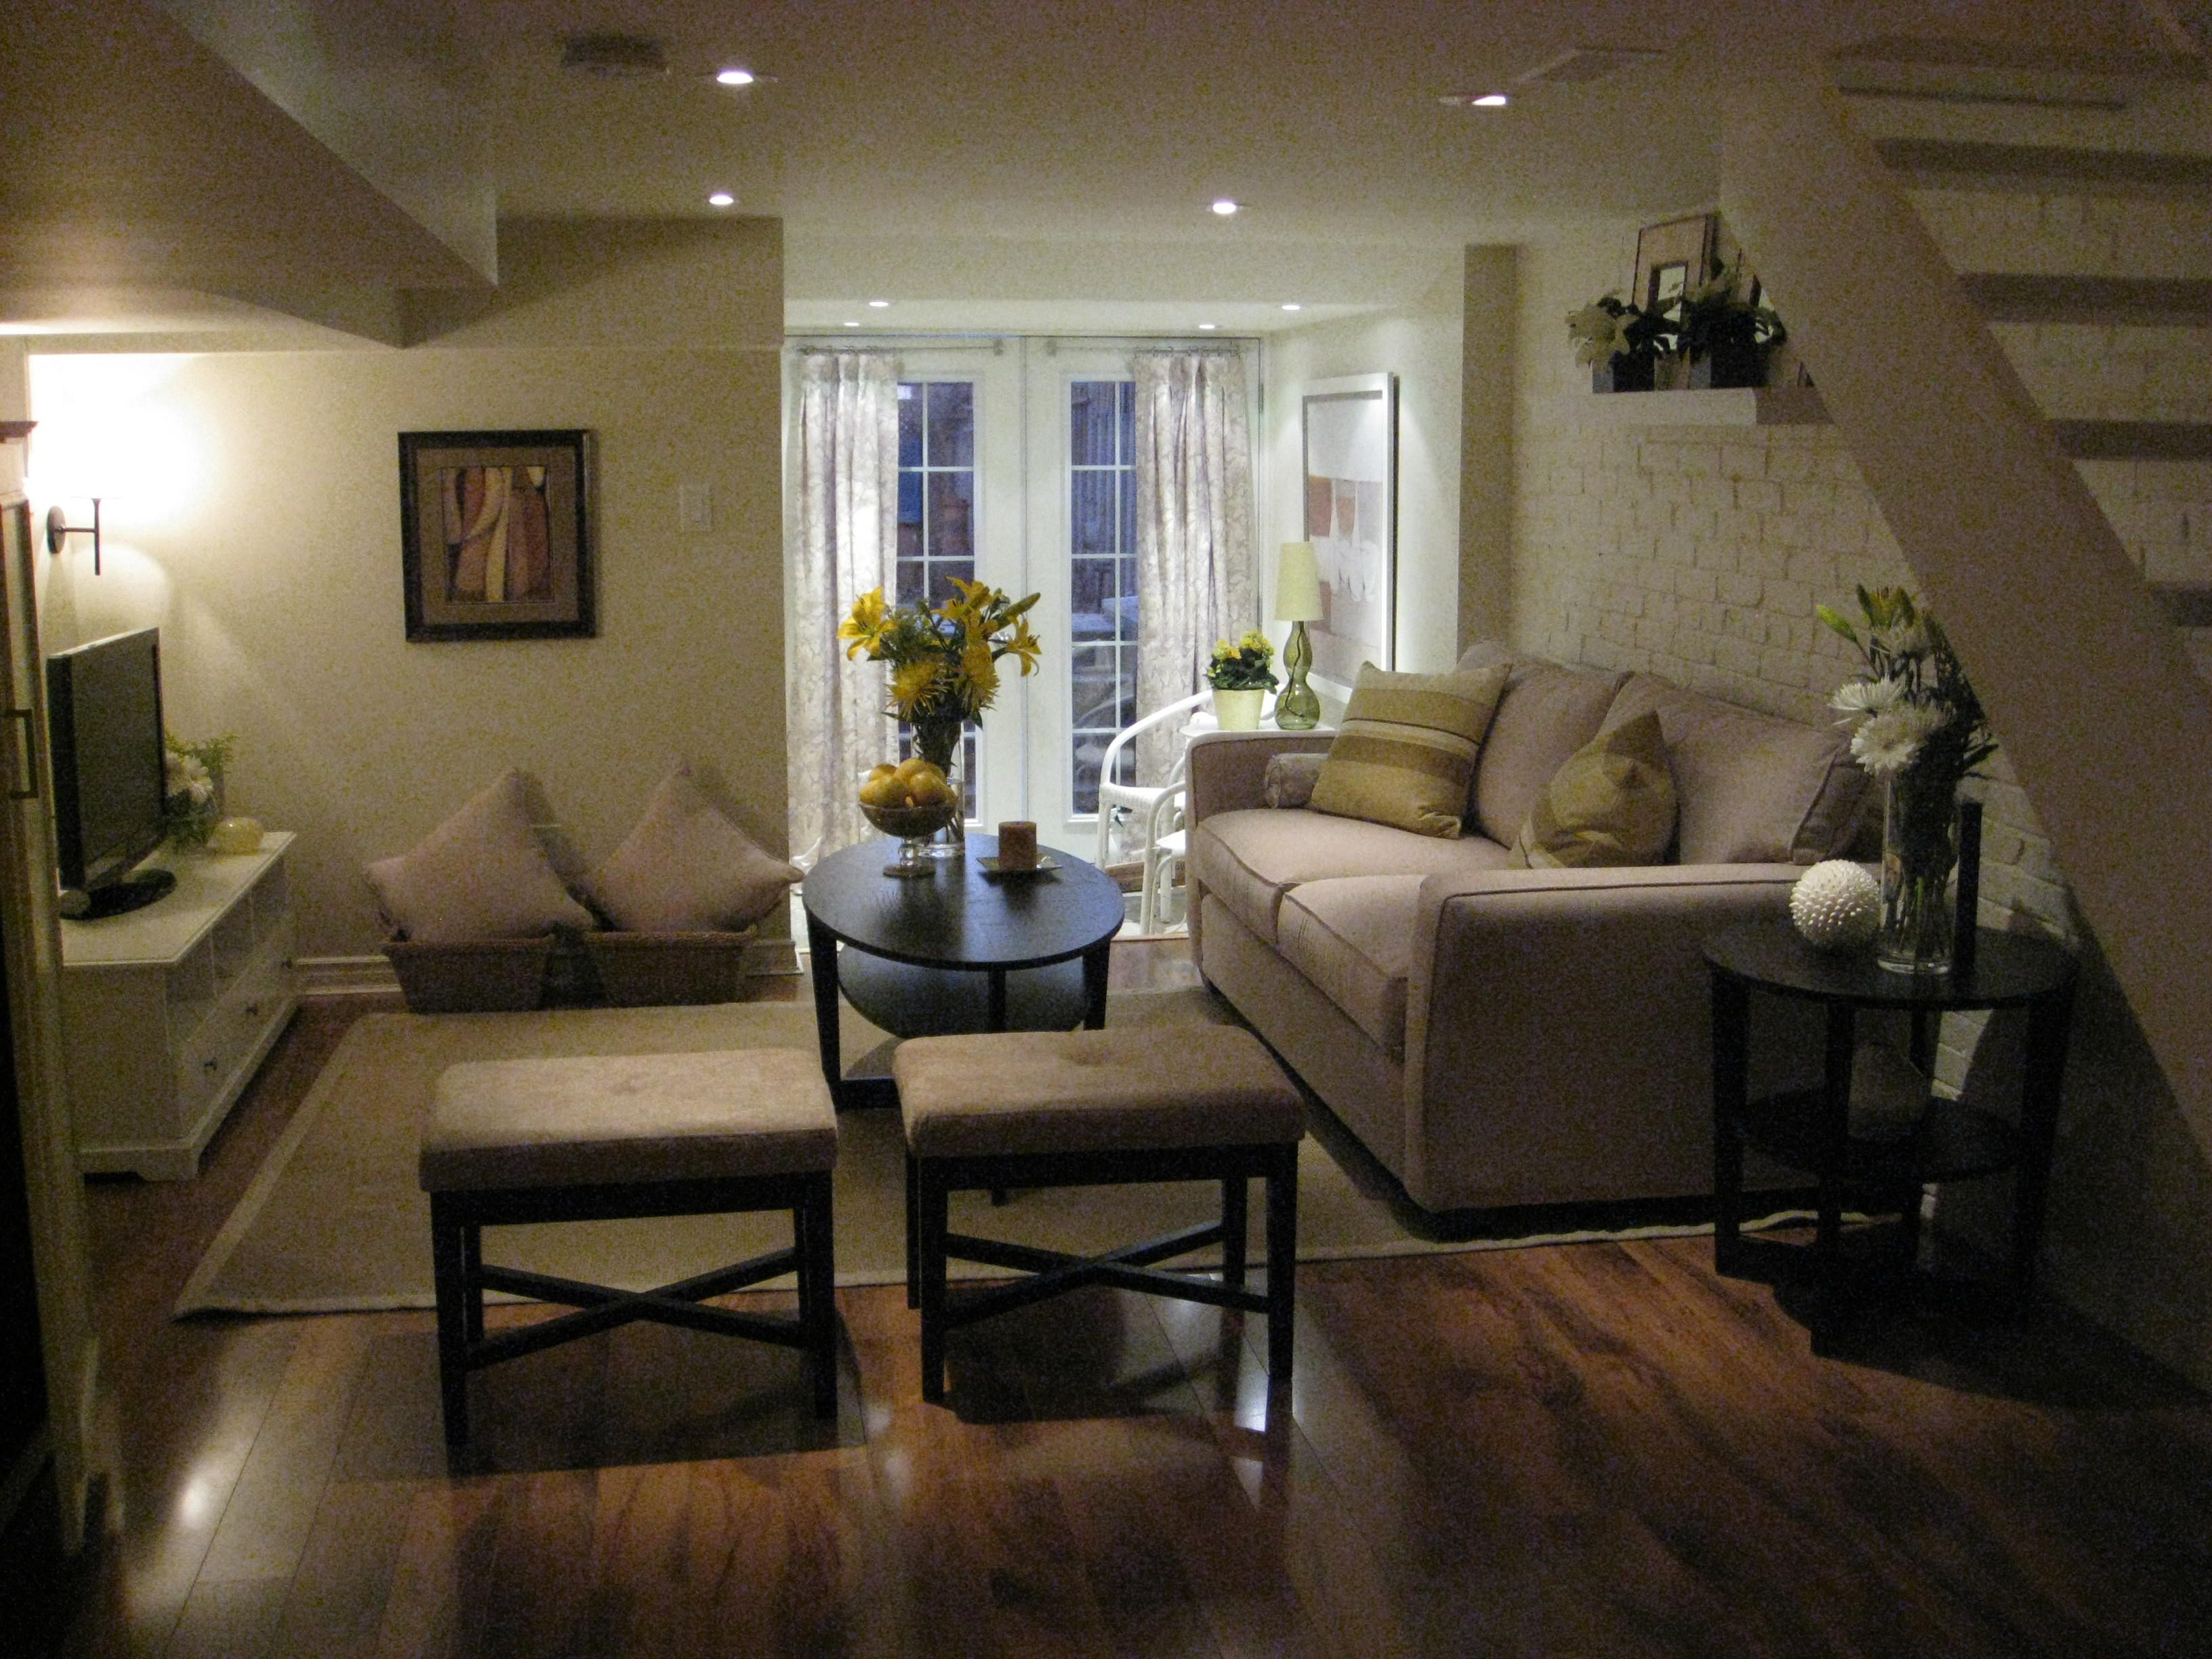 Basement Family Room Google Search Bedroom Furniture Layout